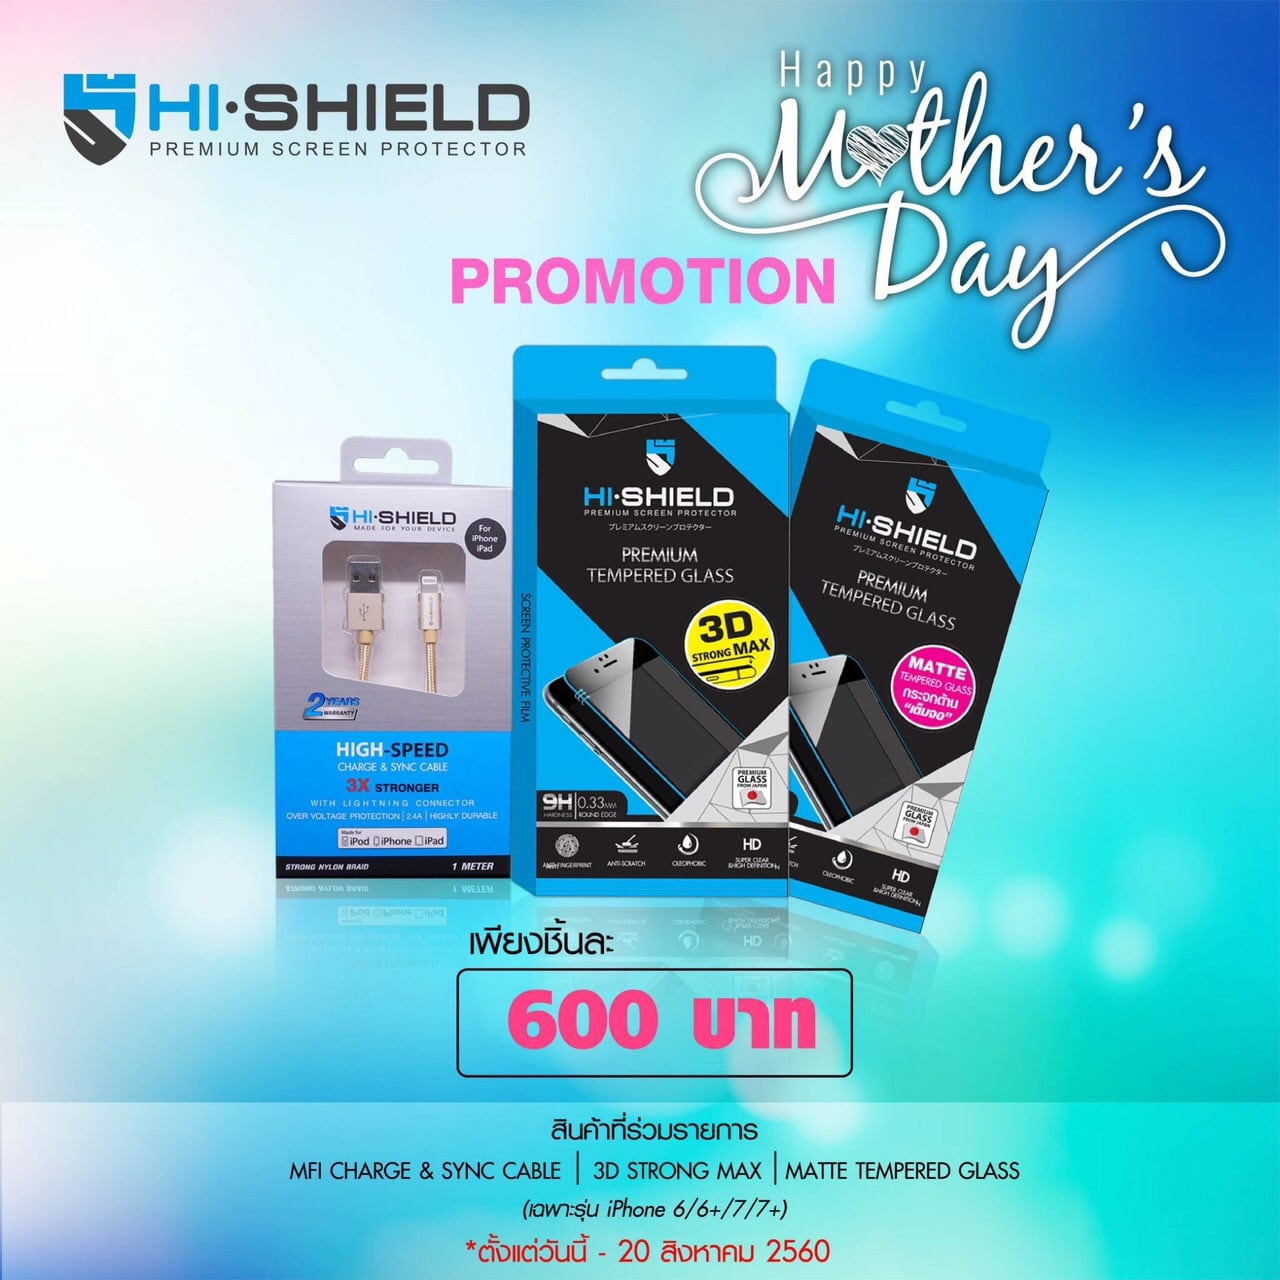 Hs Motherday 2017 Promo